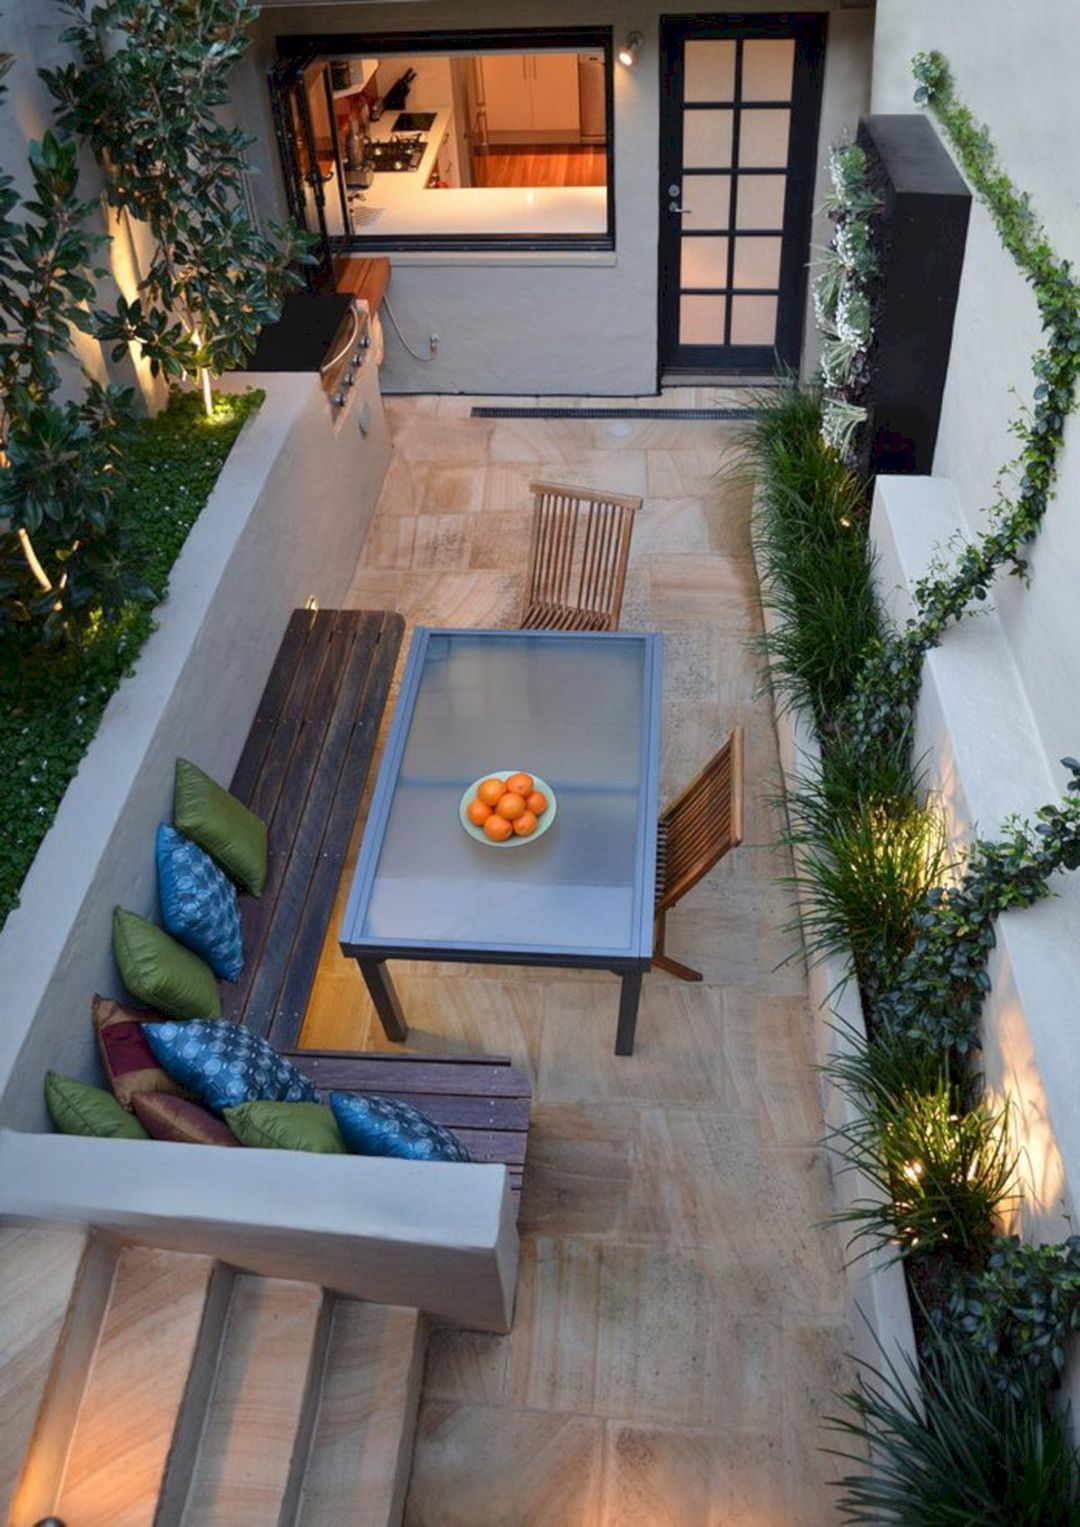 35 Marvelous Small Outdoor Patio Ideas On A Budget Dexorate Small Outdoor Patios Small Backyard Patio Indoor Courtyard